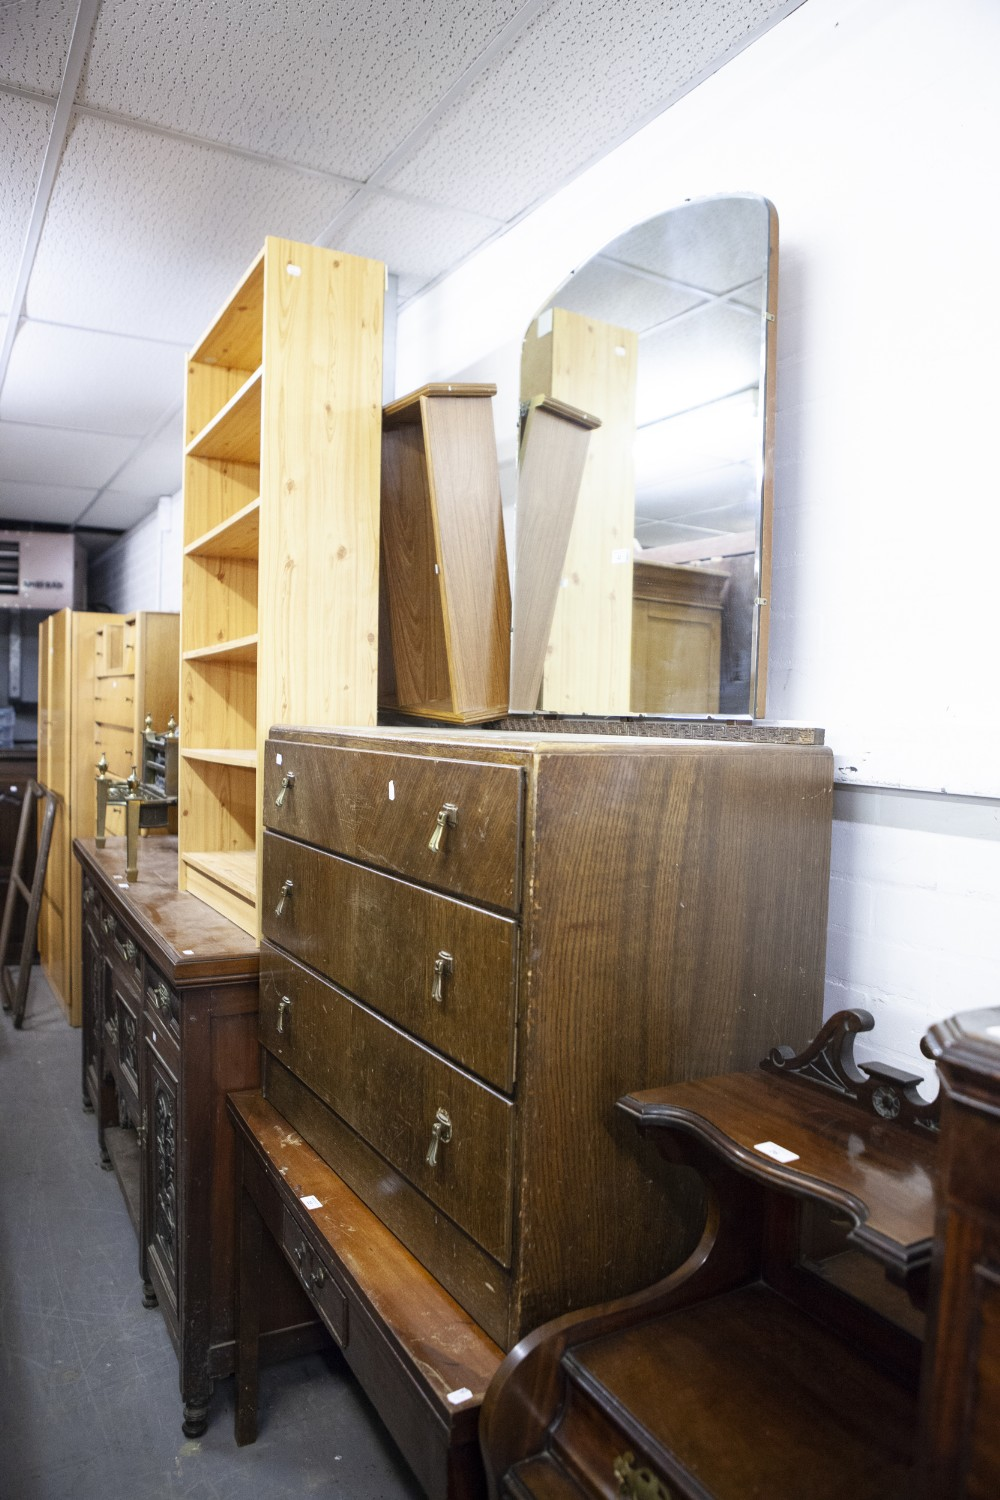 Lot 42 - AN EARLY TWENTIETH CENTURY OAK DRESSING CHEST, SHAPED MIRROR OVER THREE LONG DRAWERS, MODERN PINE